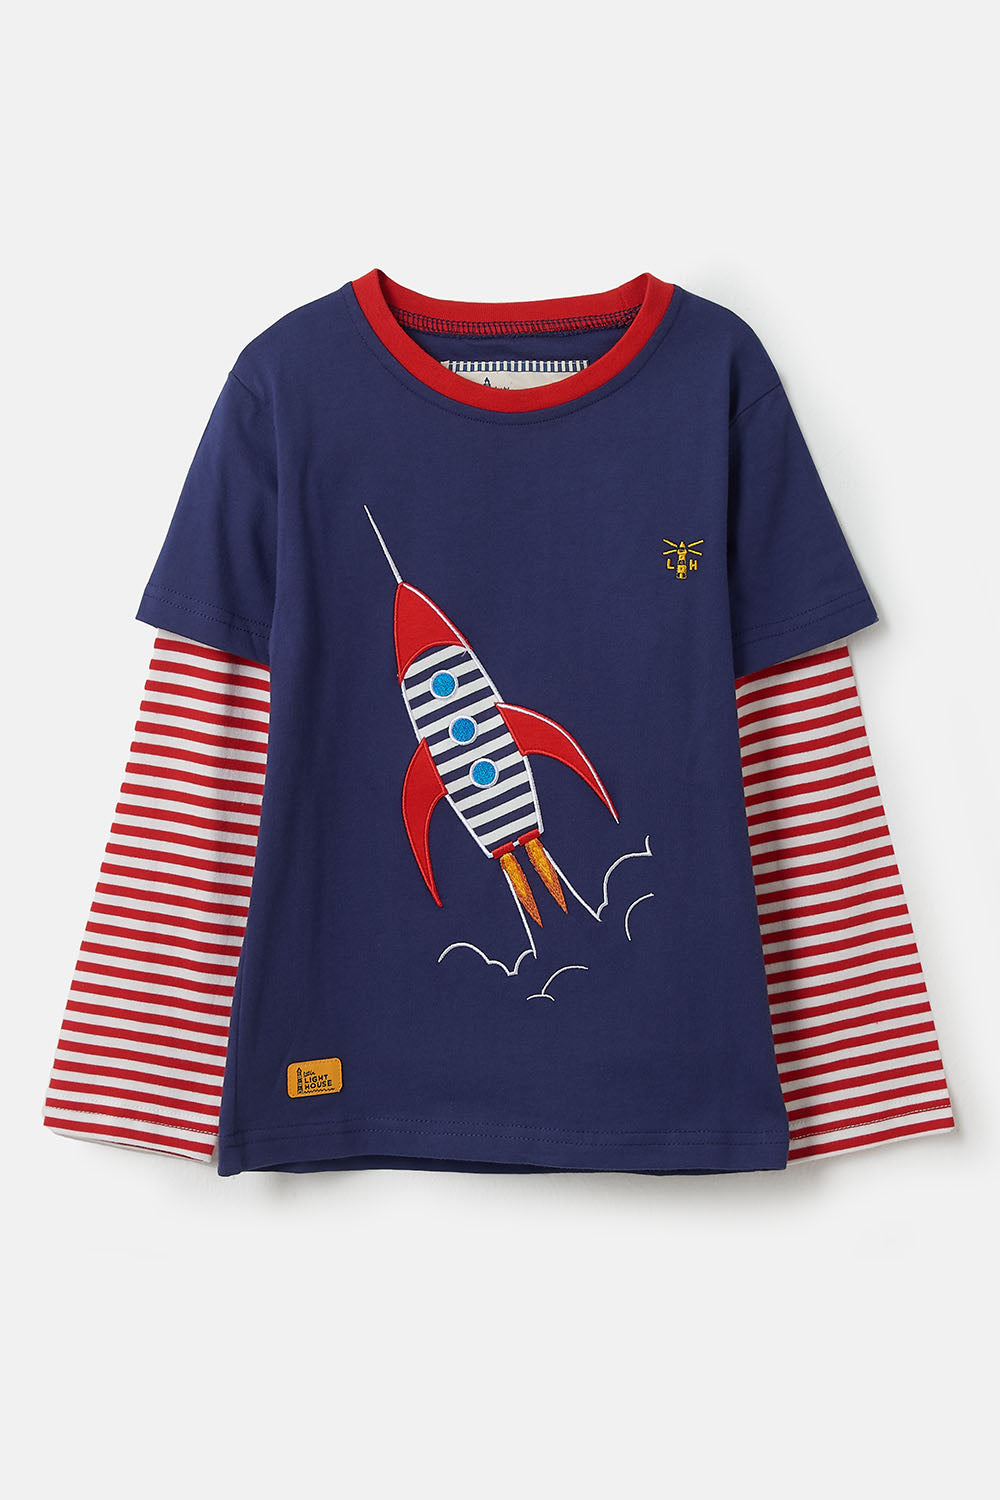 Oliver Top - Rocket, Boy's Long Sleeve Top | Lighthouse